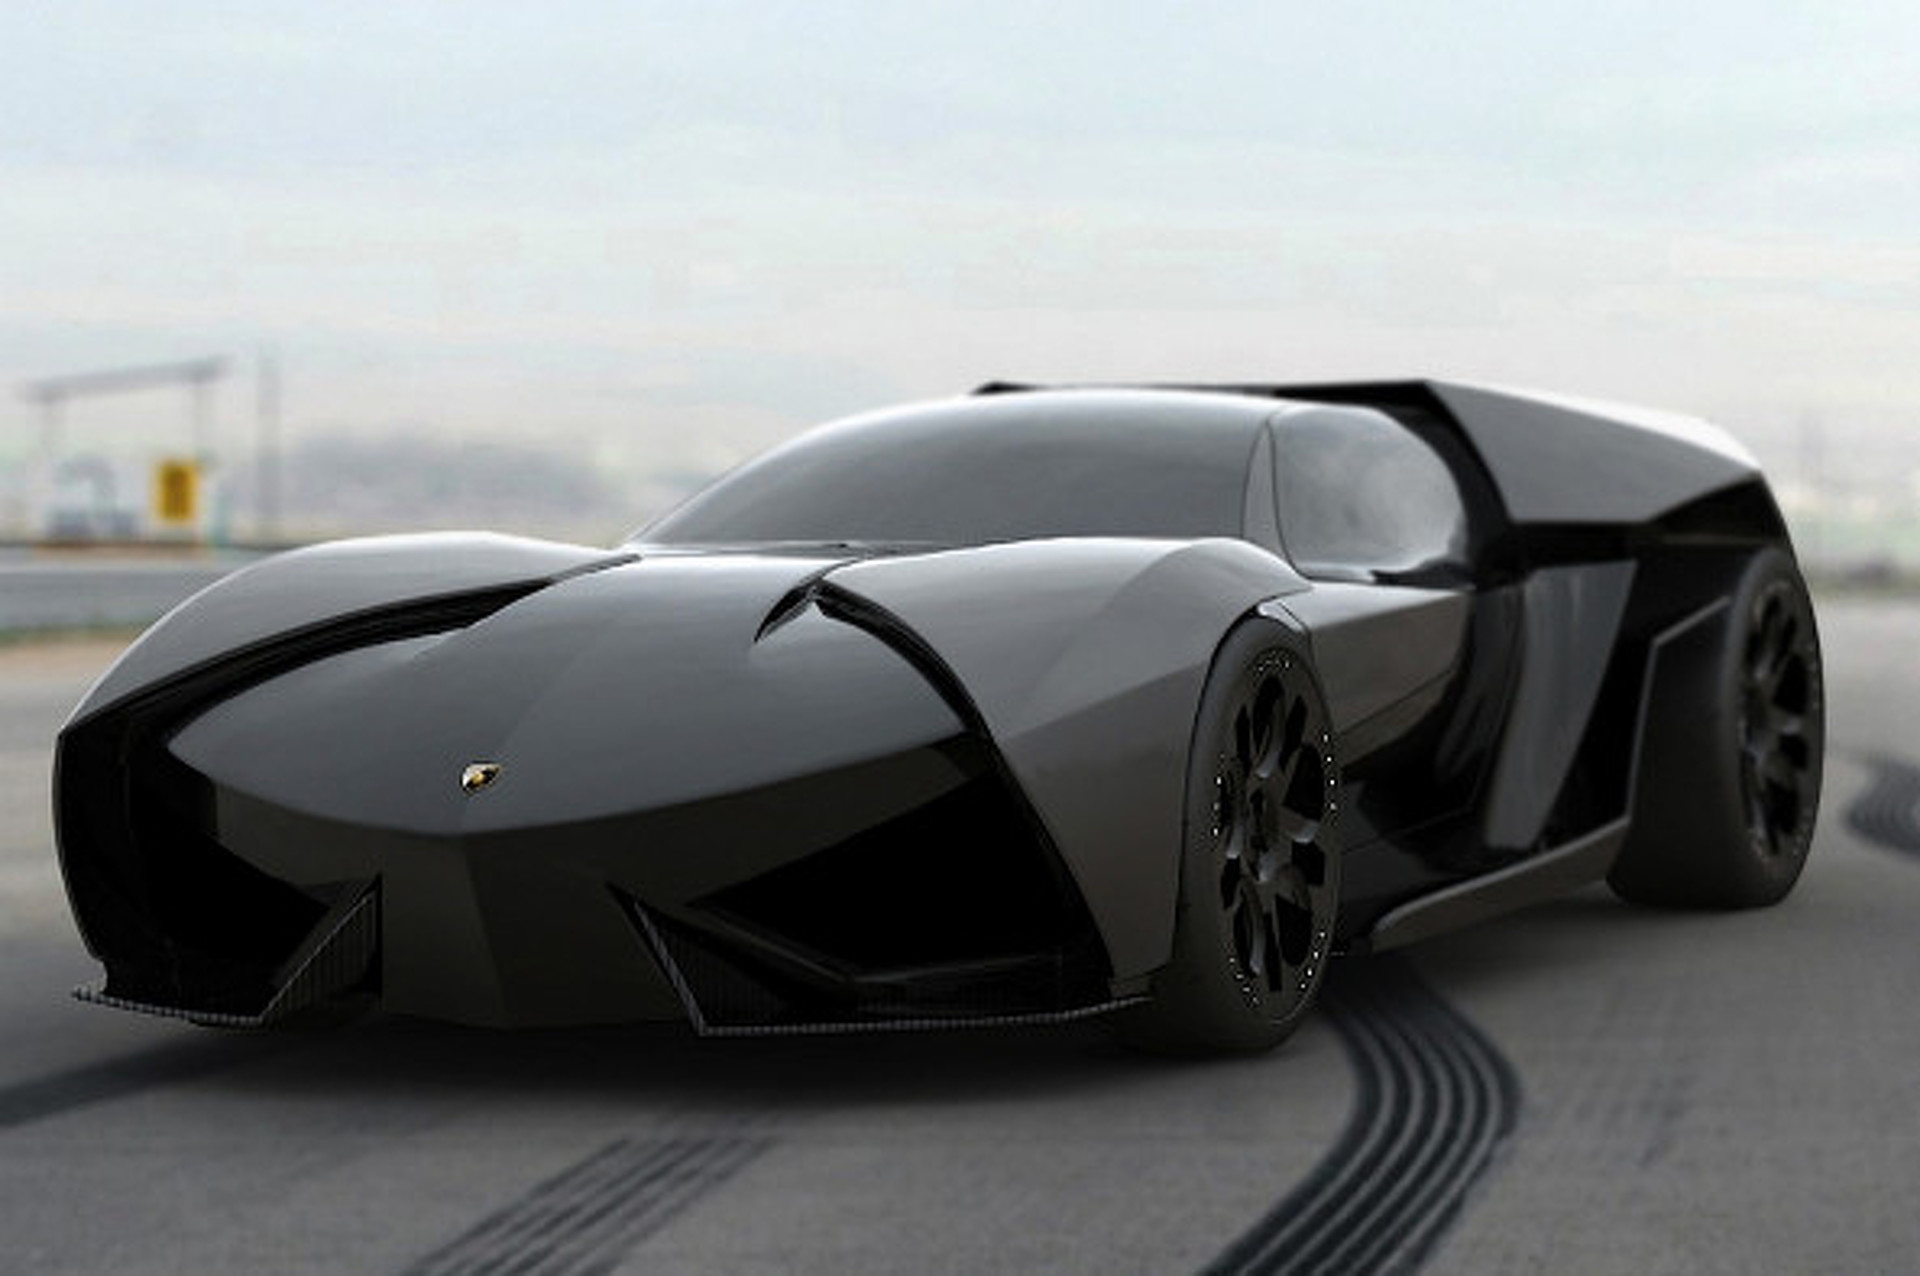 The Ankonian Concept Doing Lamborghini Differently